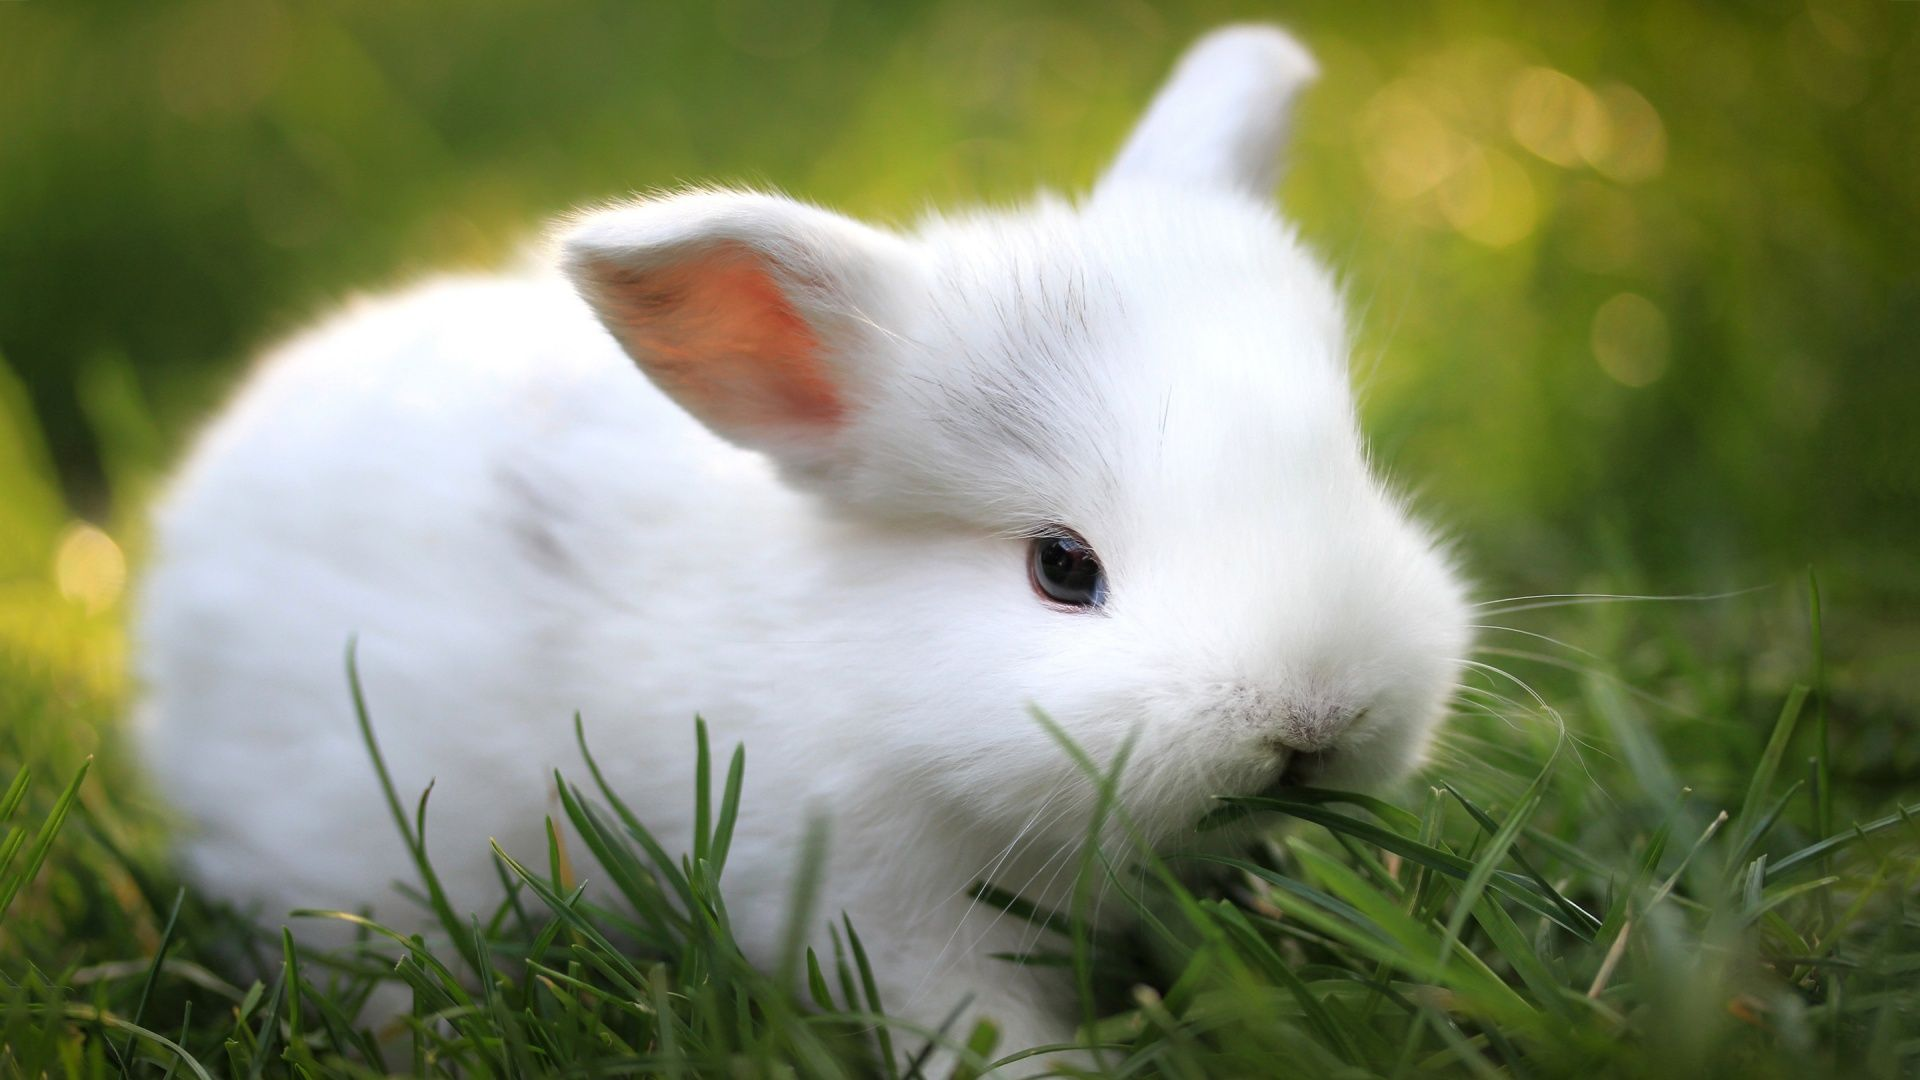 Cute Anime Bunnies Cute White Bunny Full Hd Desktop Wallpapers 1080p I Want One Sssssssooooooossssooooosssoooooooo Cute Baby Bunnies Cute Animals Cool Pets